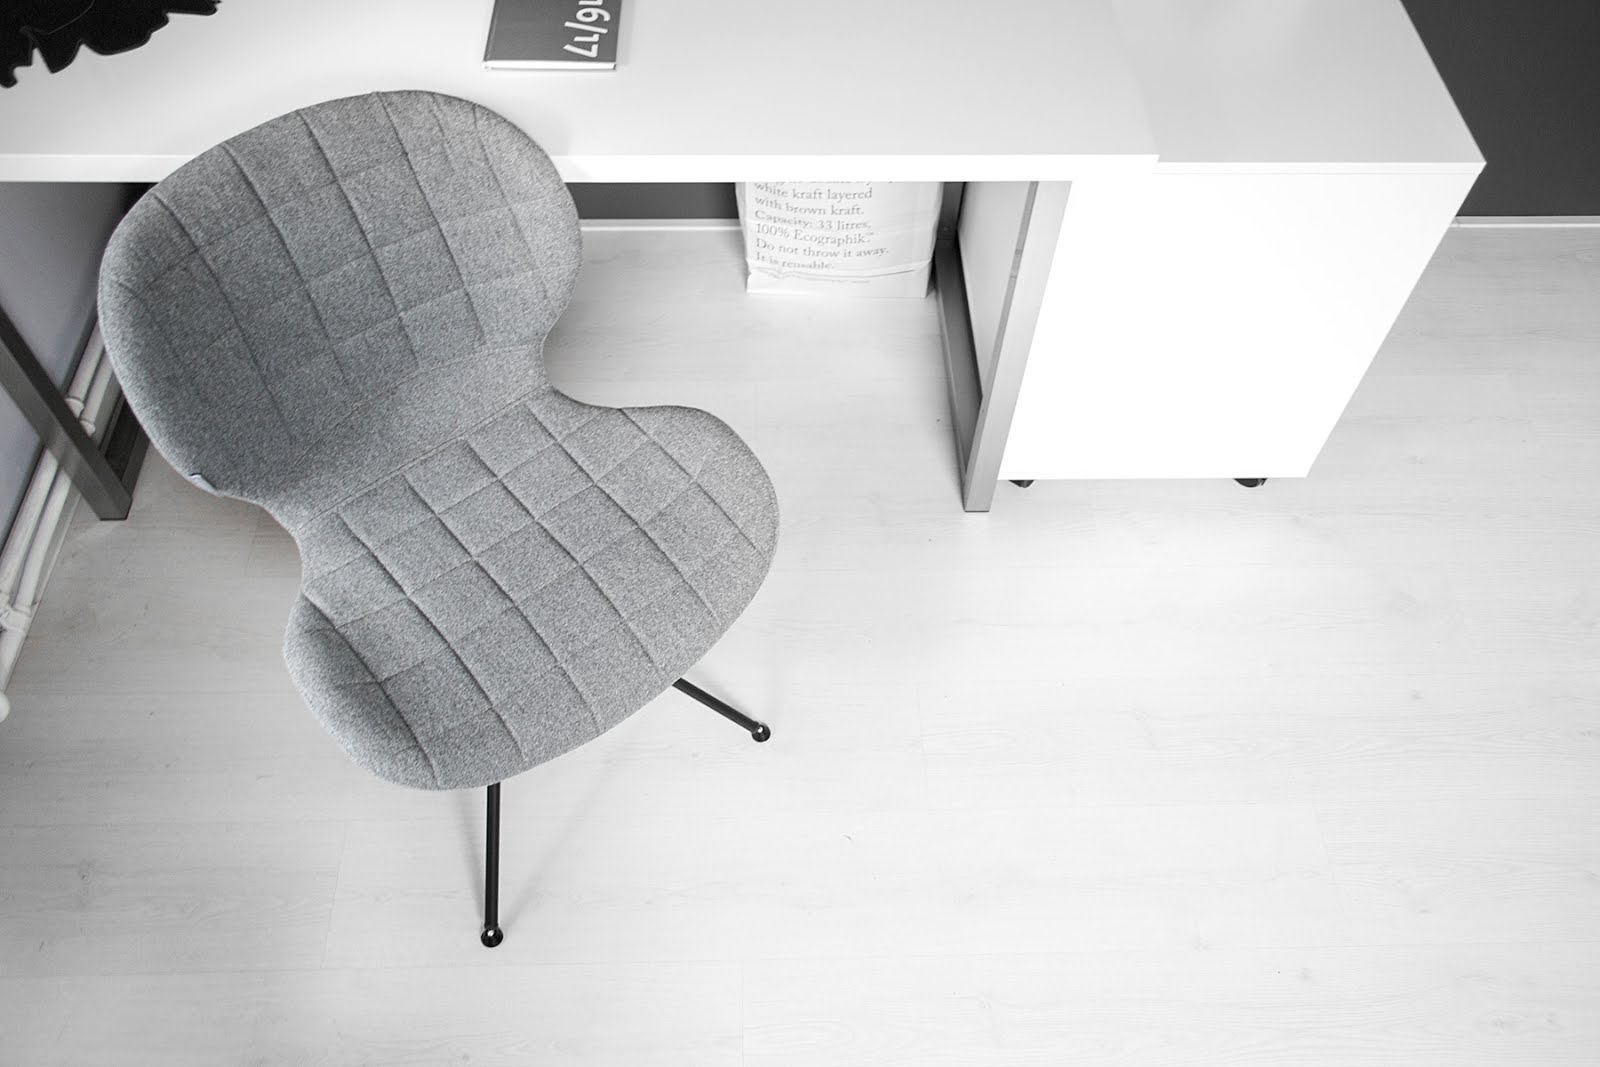 Zuiver, omg chair, minster design, minimal interior, black white, interior design, vitra, elephant mouse pad